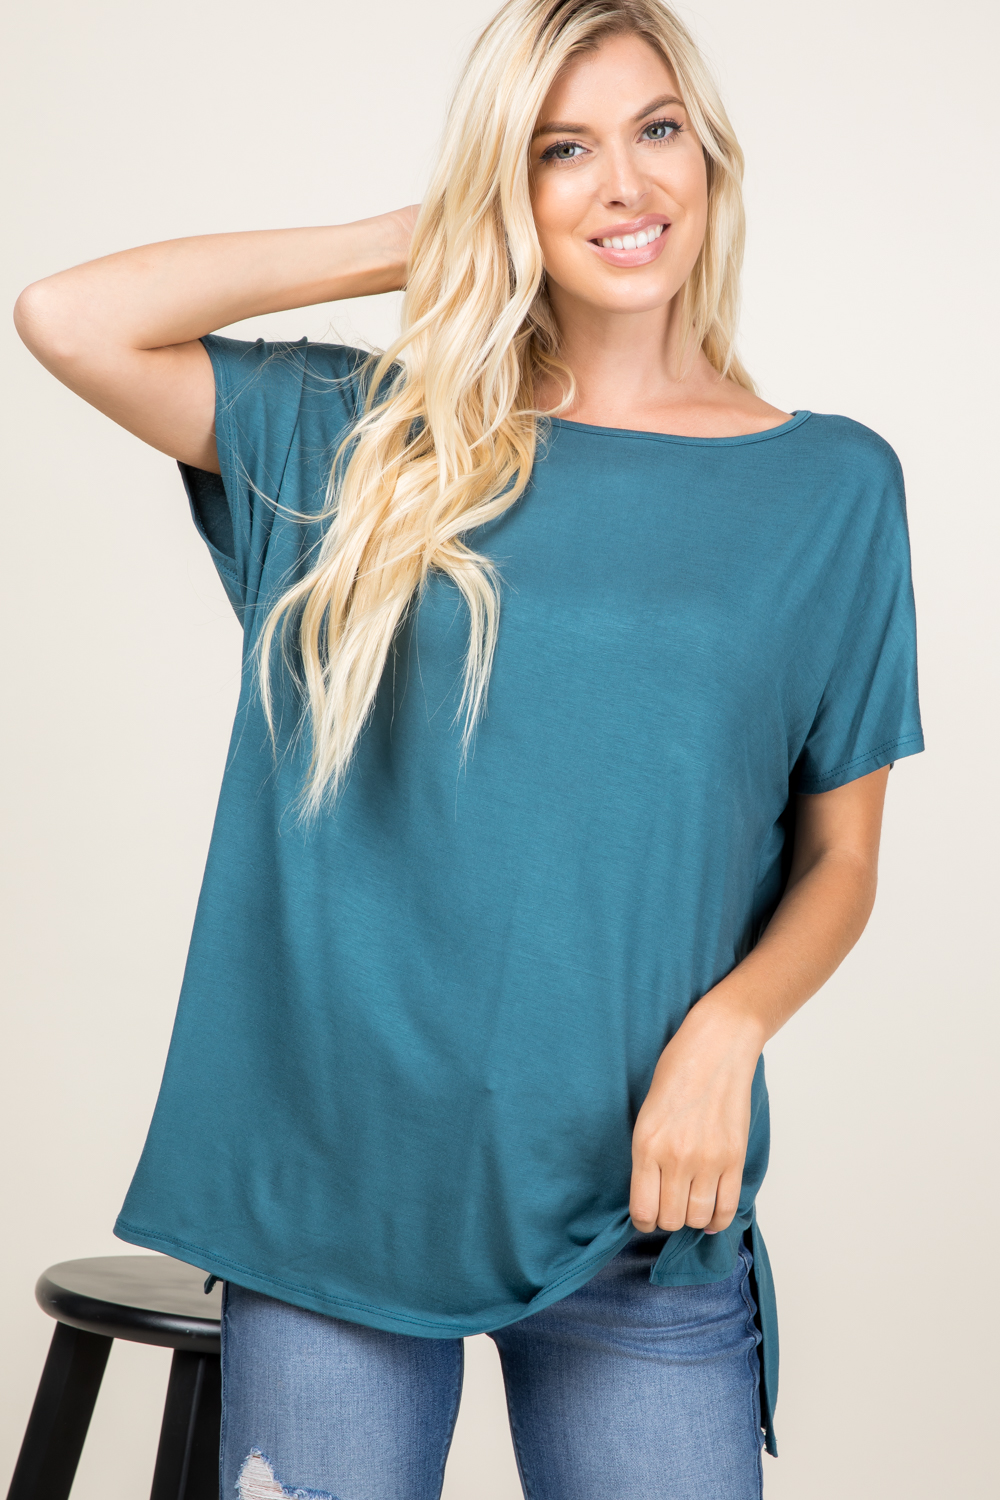 10130SS07<br/>SOLID PIKO STYLE SHORT SLEEVE TOP